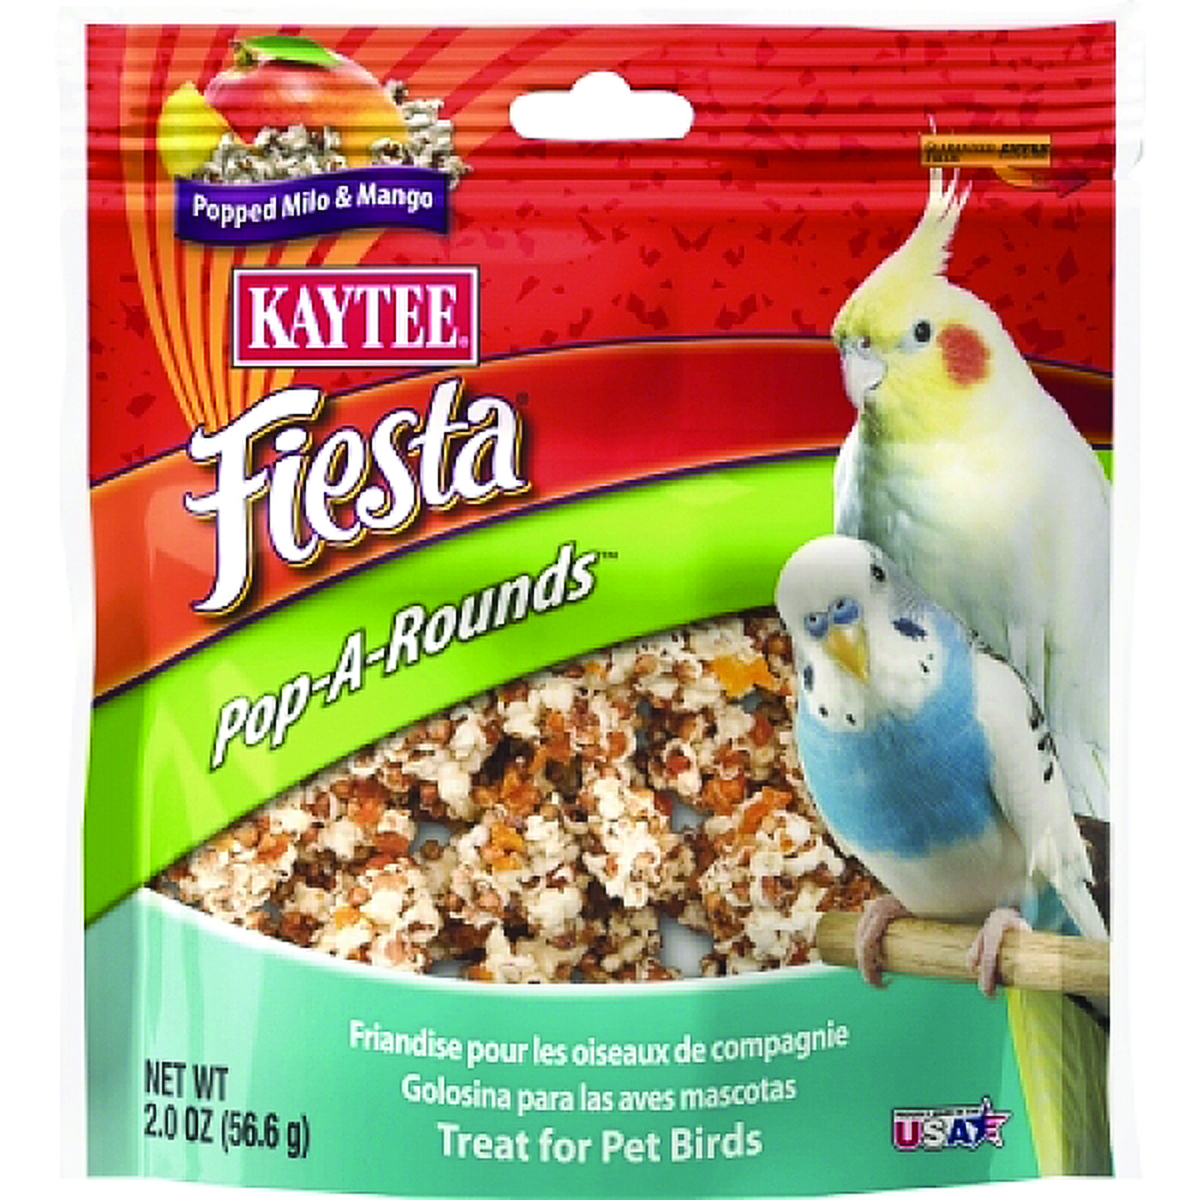 Kaytee Fiesta Pop-A-Rounds Treat - Pet Birds